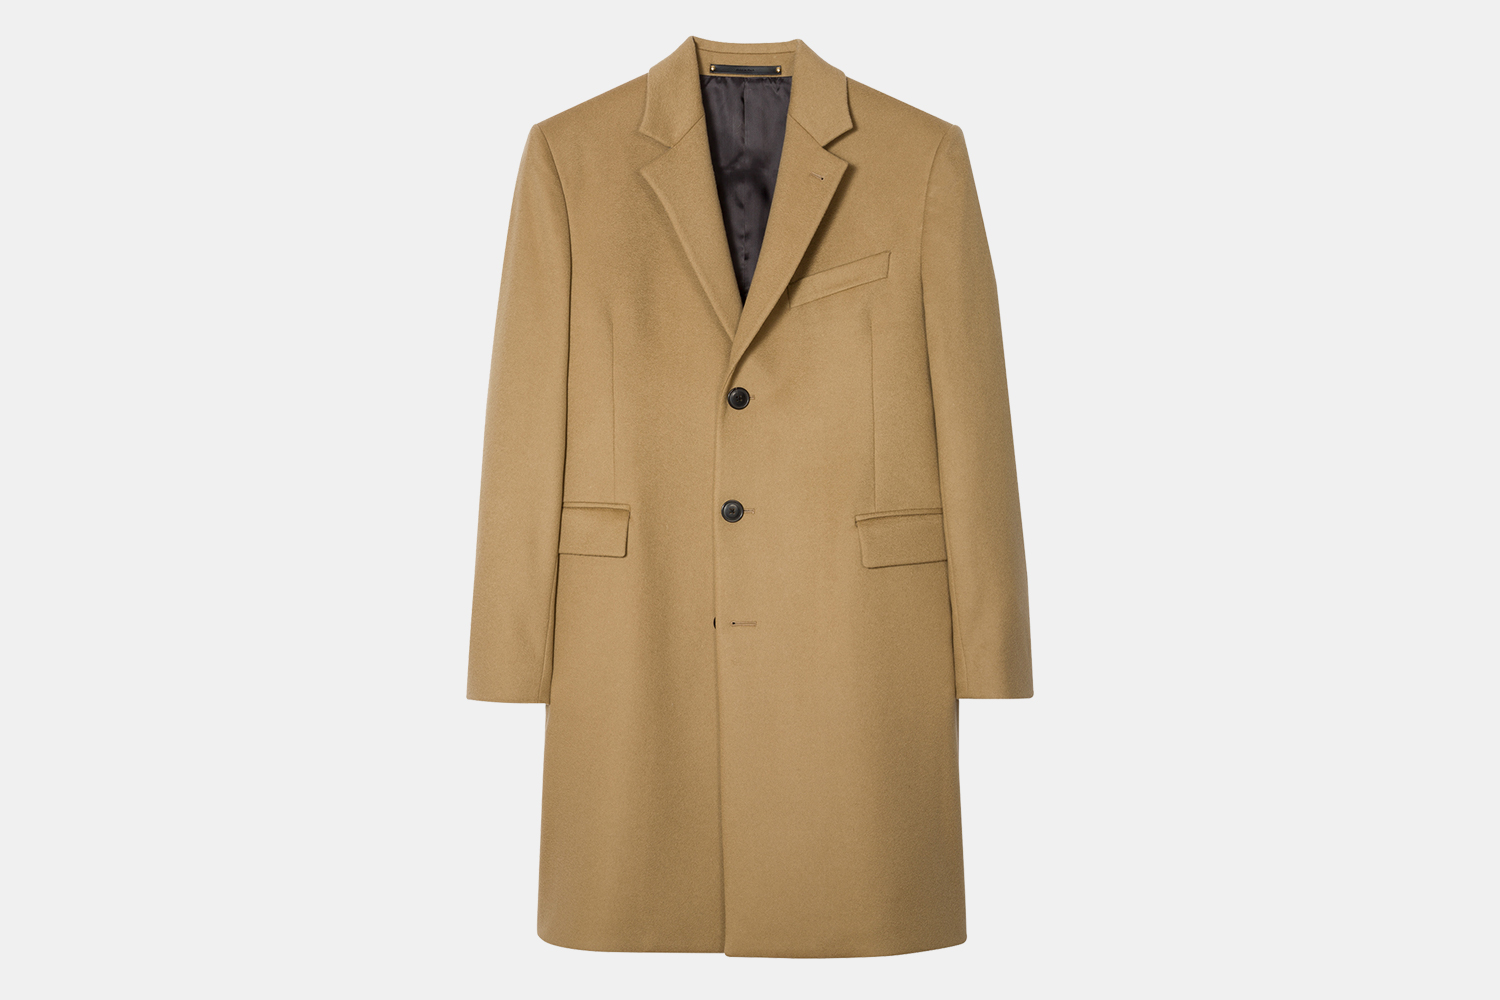 Paul Smith Men's Sand Wool-Cashmere Overcoat Discount